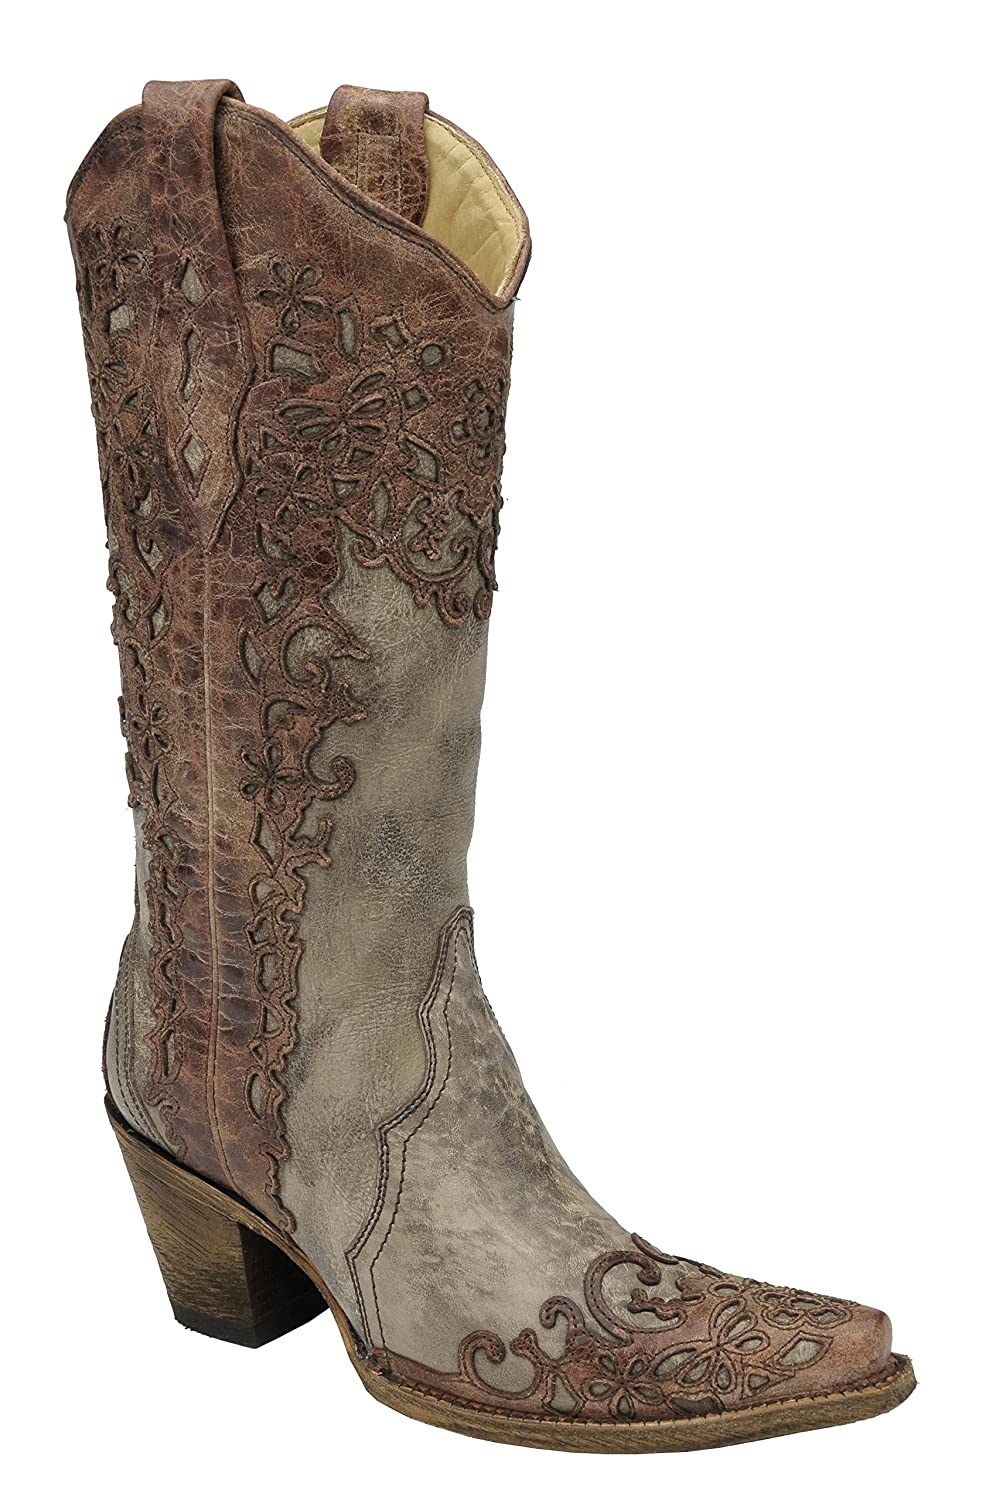 Corral Women's Sand and Cognac Laser Overlay Cowgirl B(M) Western Boot B00FQPJ2VW 9.5 B(M) Cowgirl US|Brown c02c84